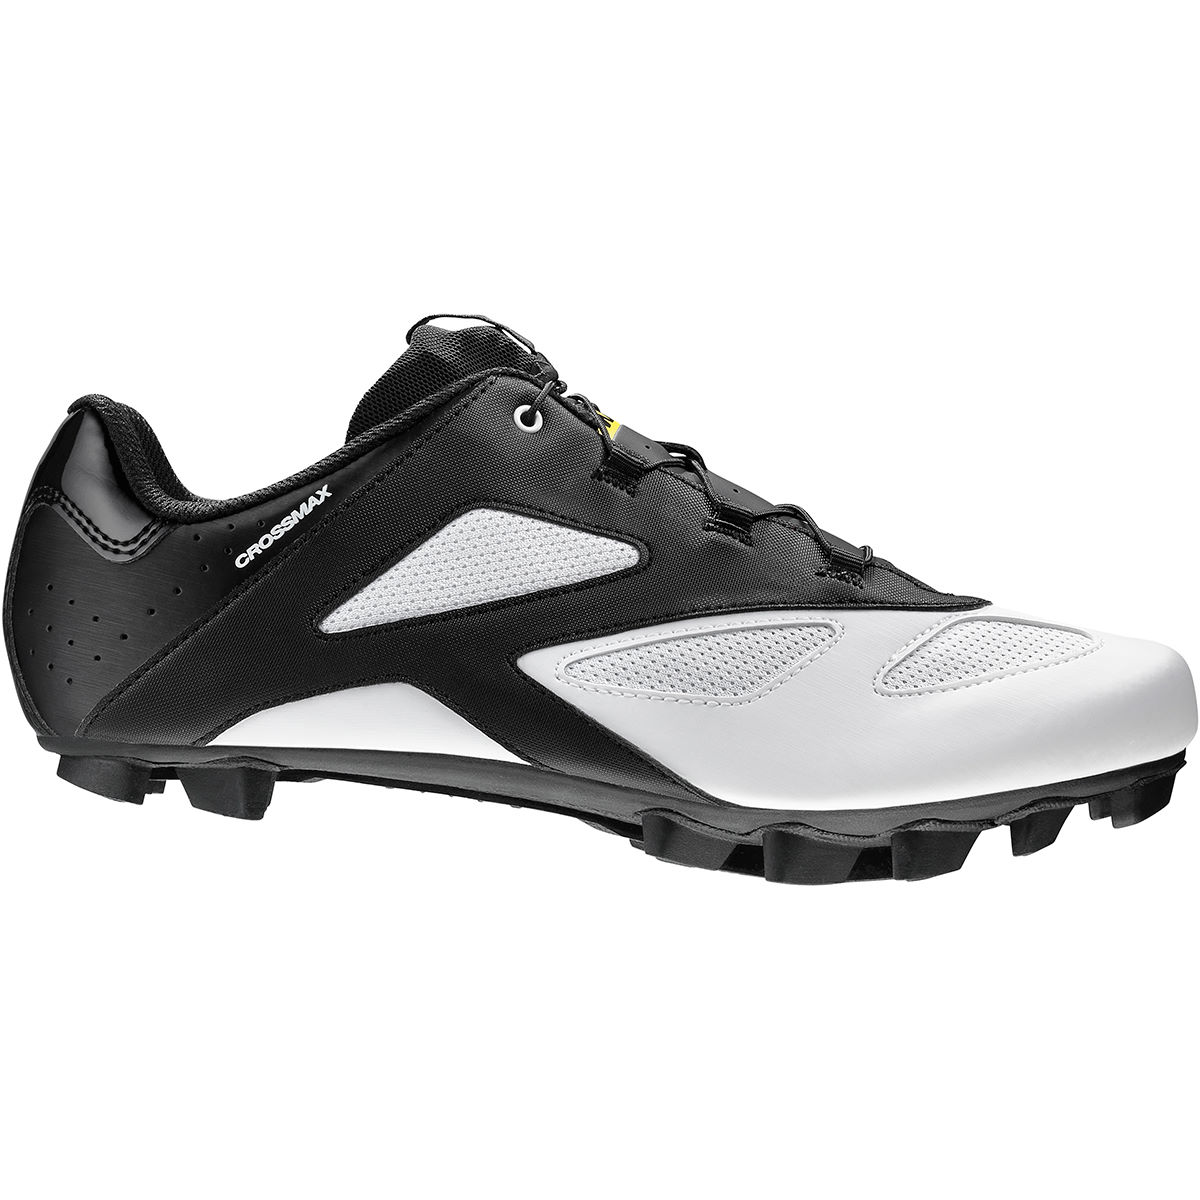 Chaussures VTT Mavic Crossmax SPD - UK 7 Black - White